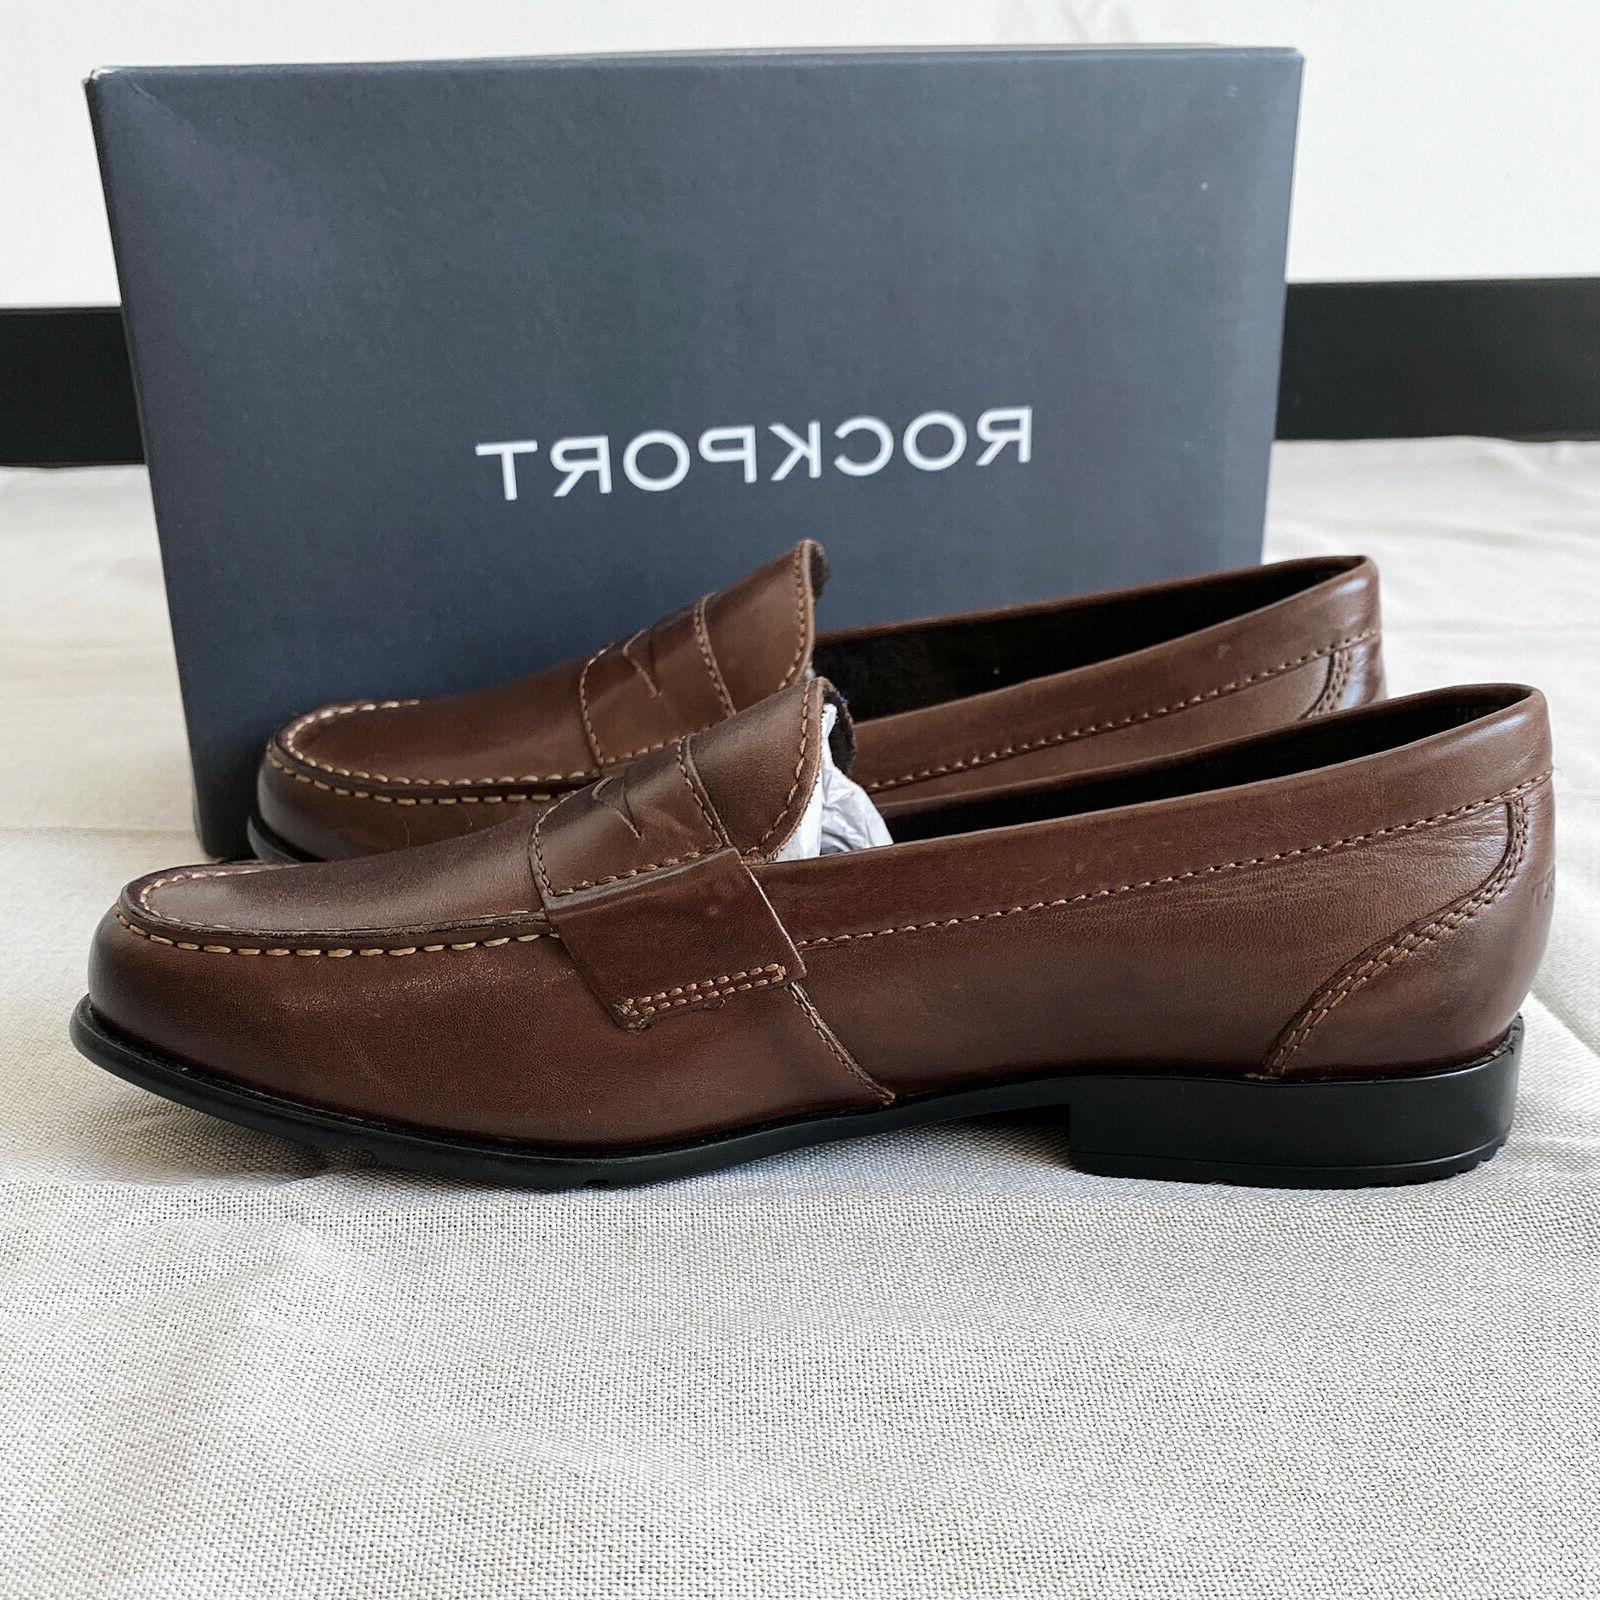 Rockport Men's Classic Loafer Penny Brown with defects